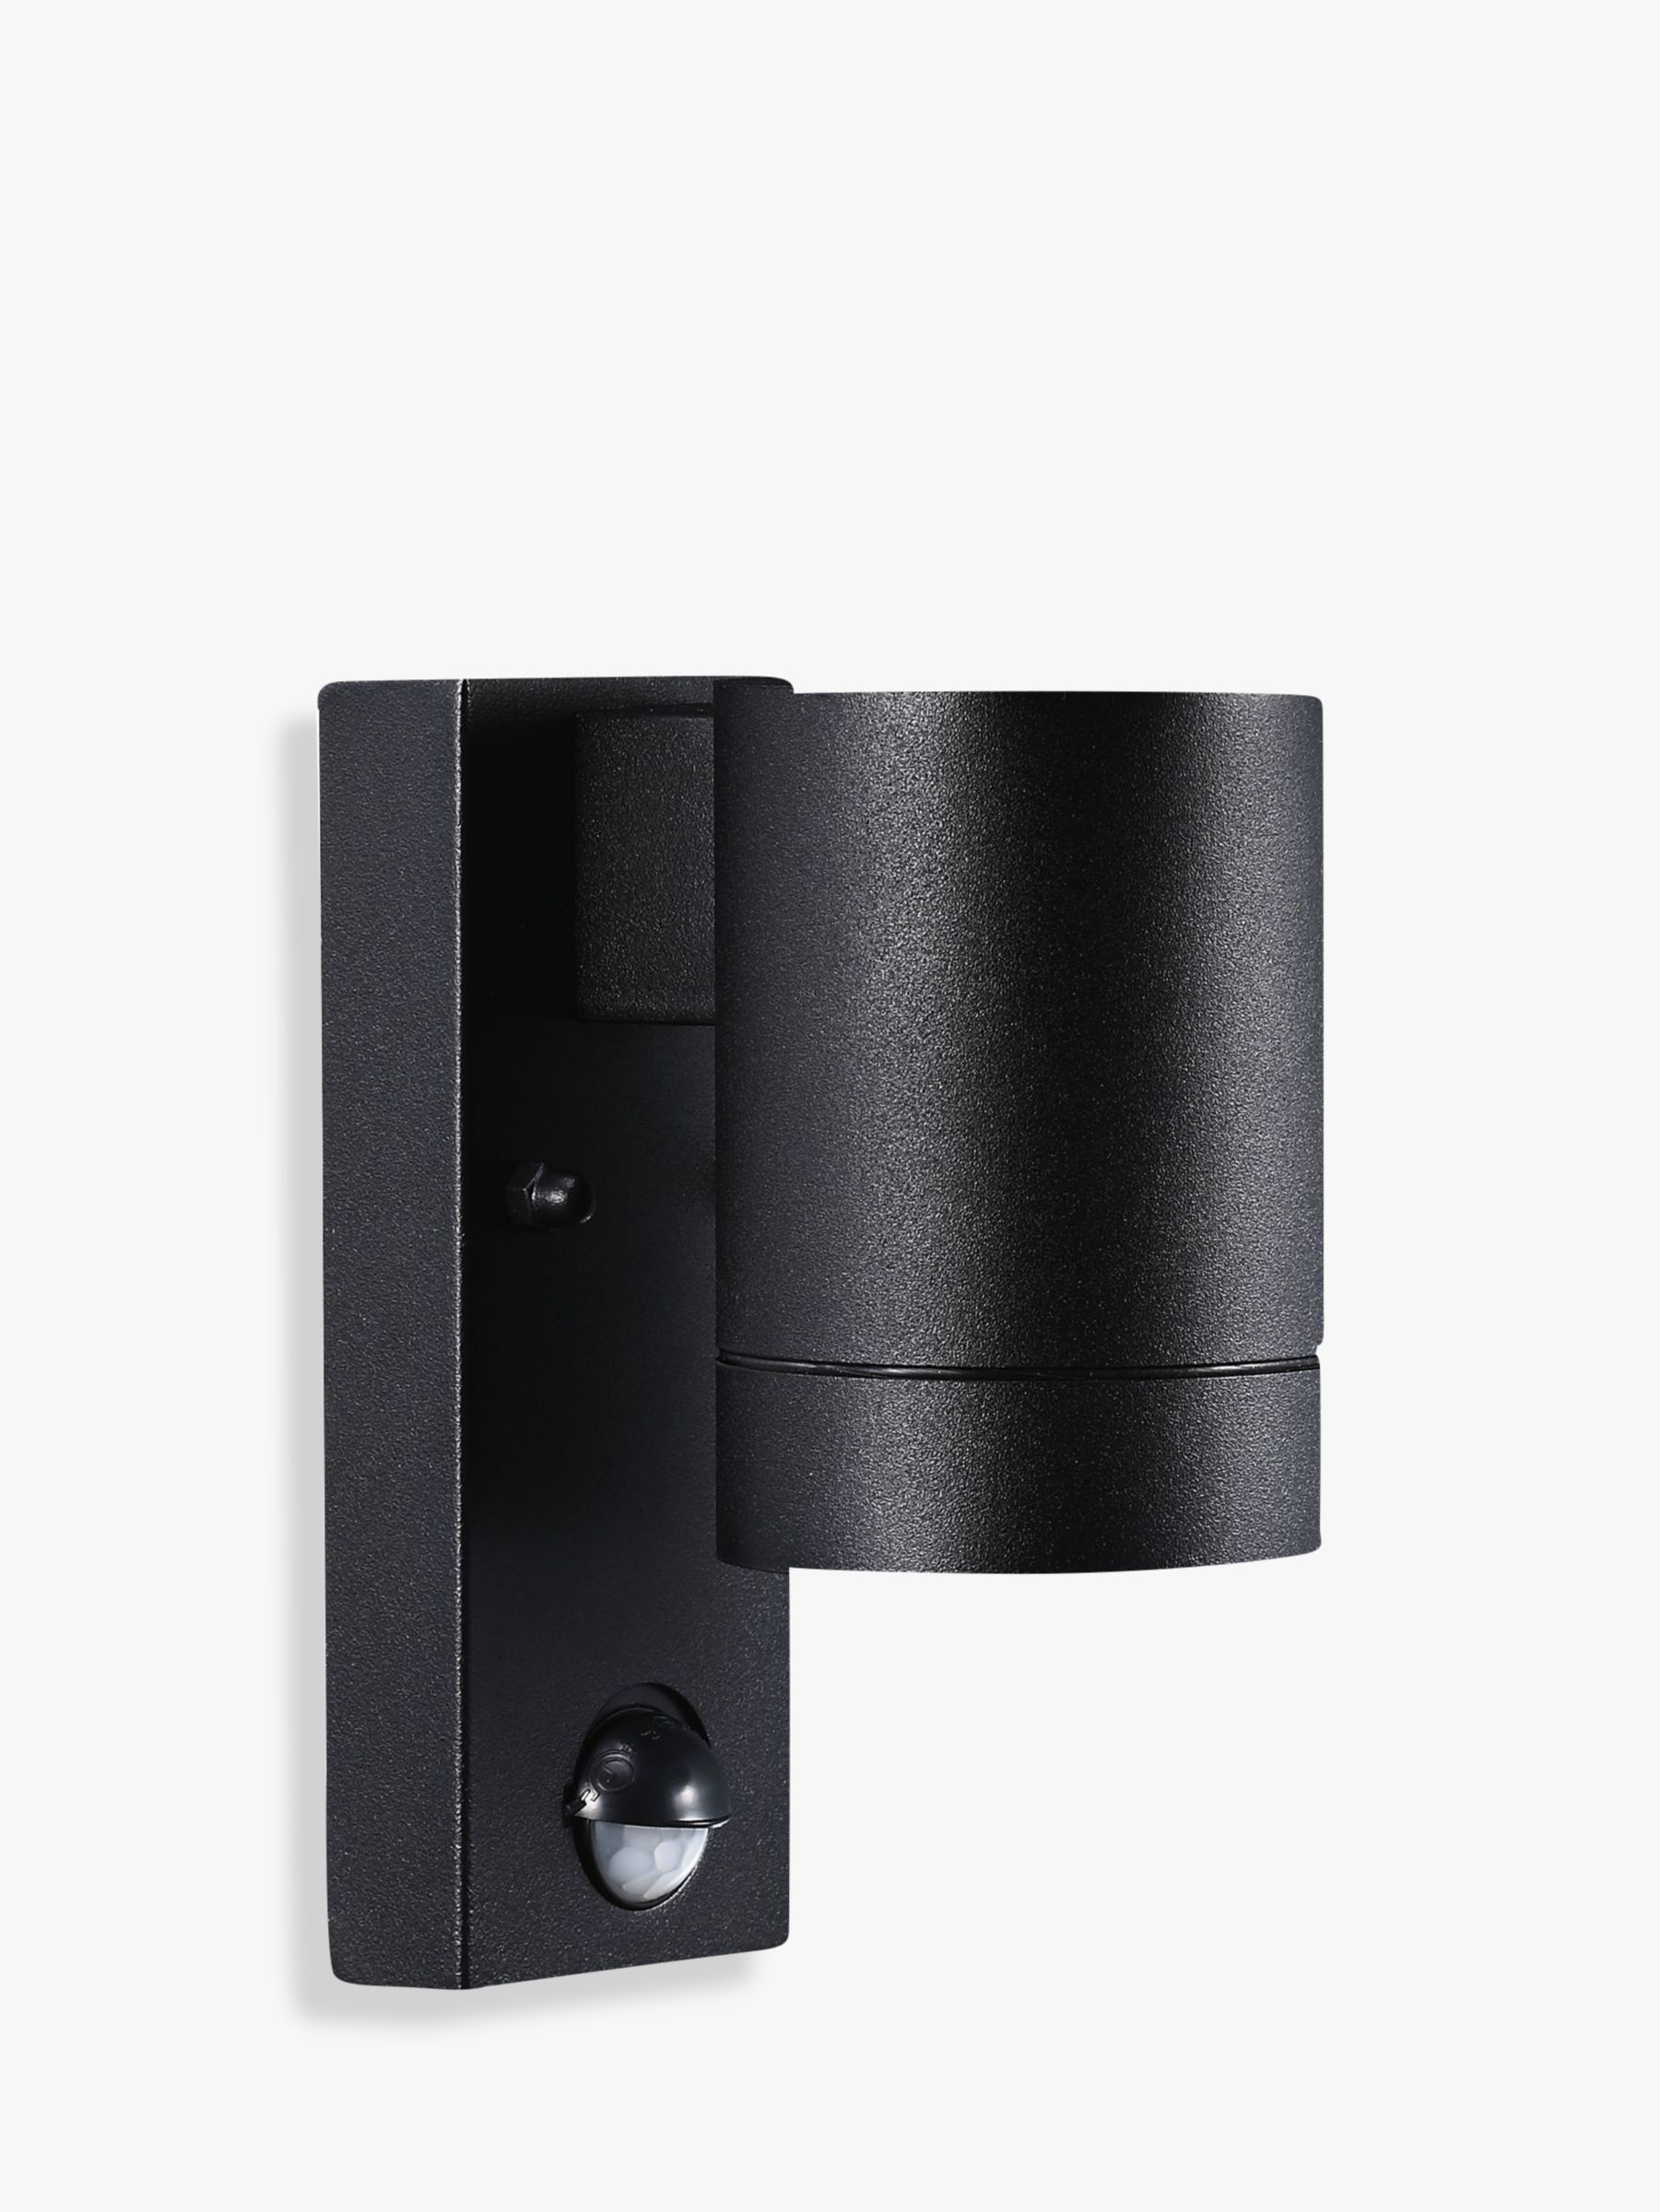 Buy Nordlux Tin Maxi PIR Outdoor Sensor Wall Light, Black John Lewis